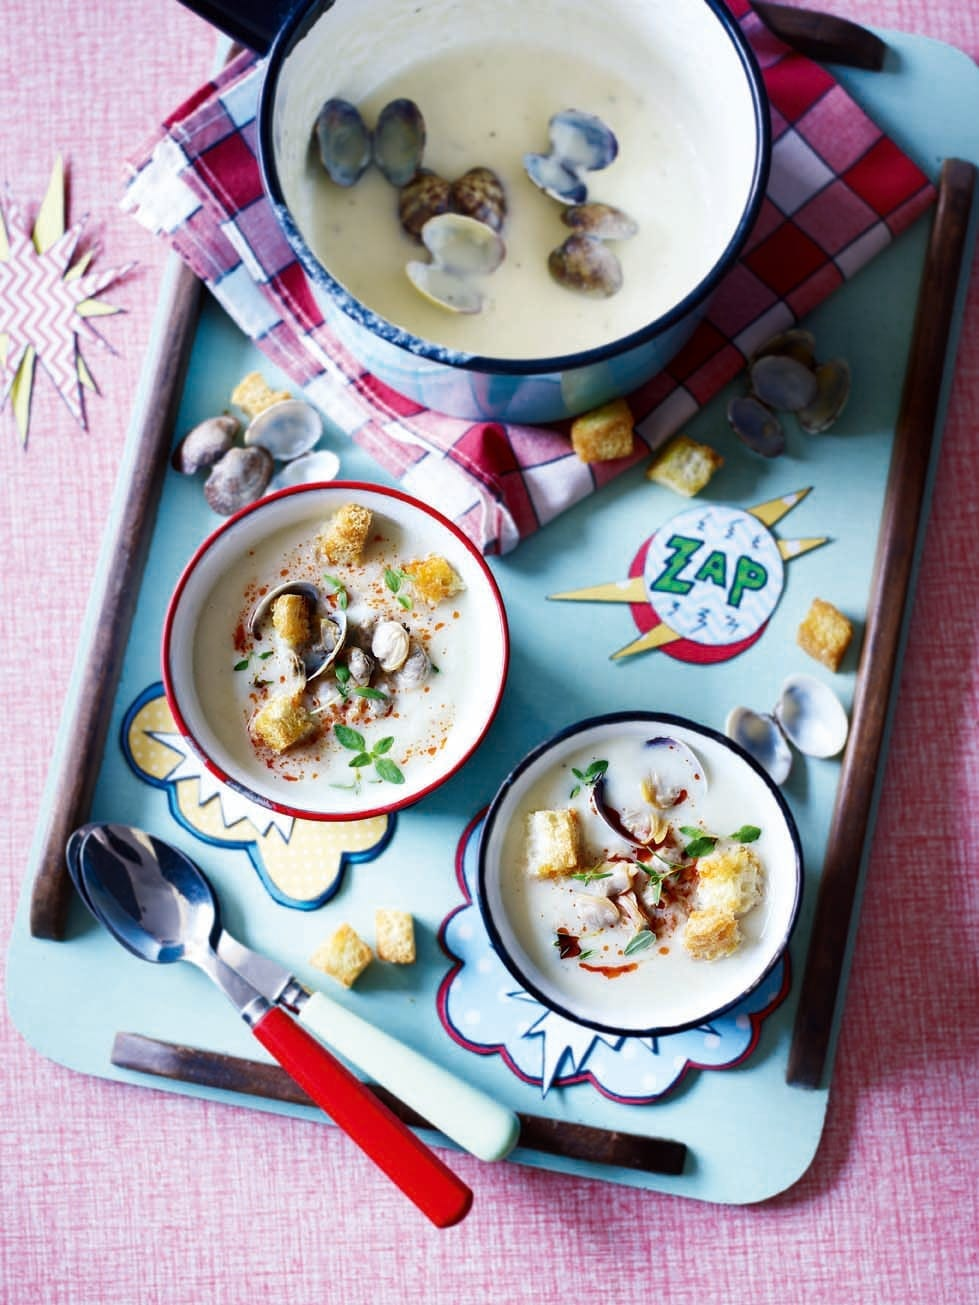 Jerusalem Artichoke Soup With Clams Garlic Croutons And Harissa Recipe Delicious Magazine